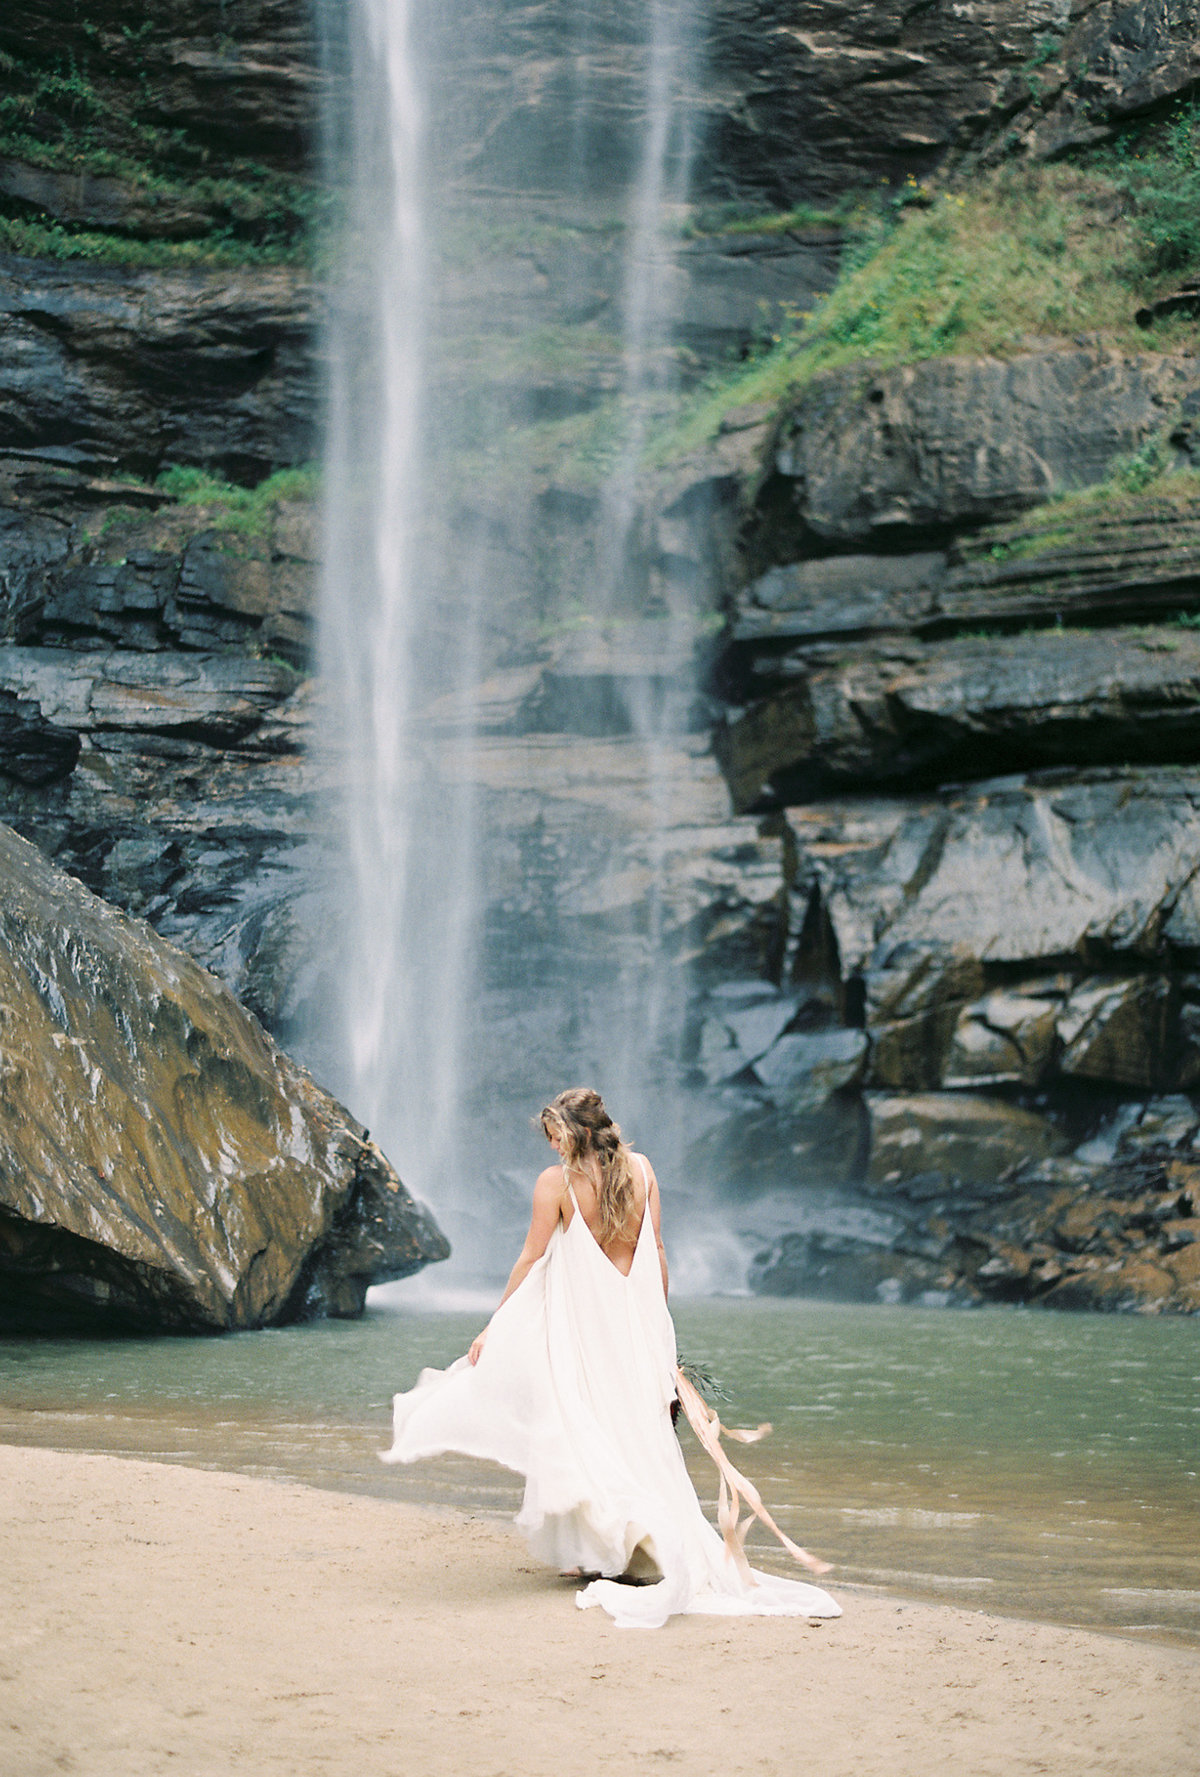 toccoa-falls-anniversary-session-melanie-gabrielle-photography-063